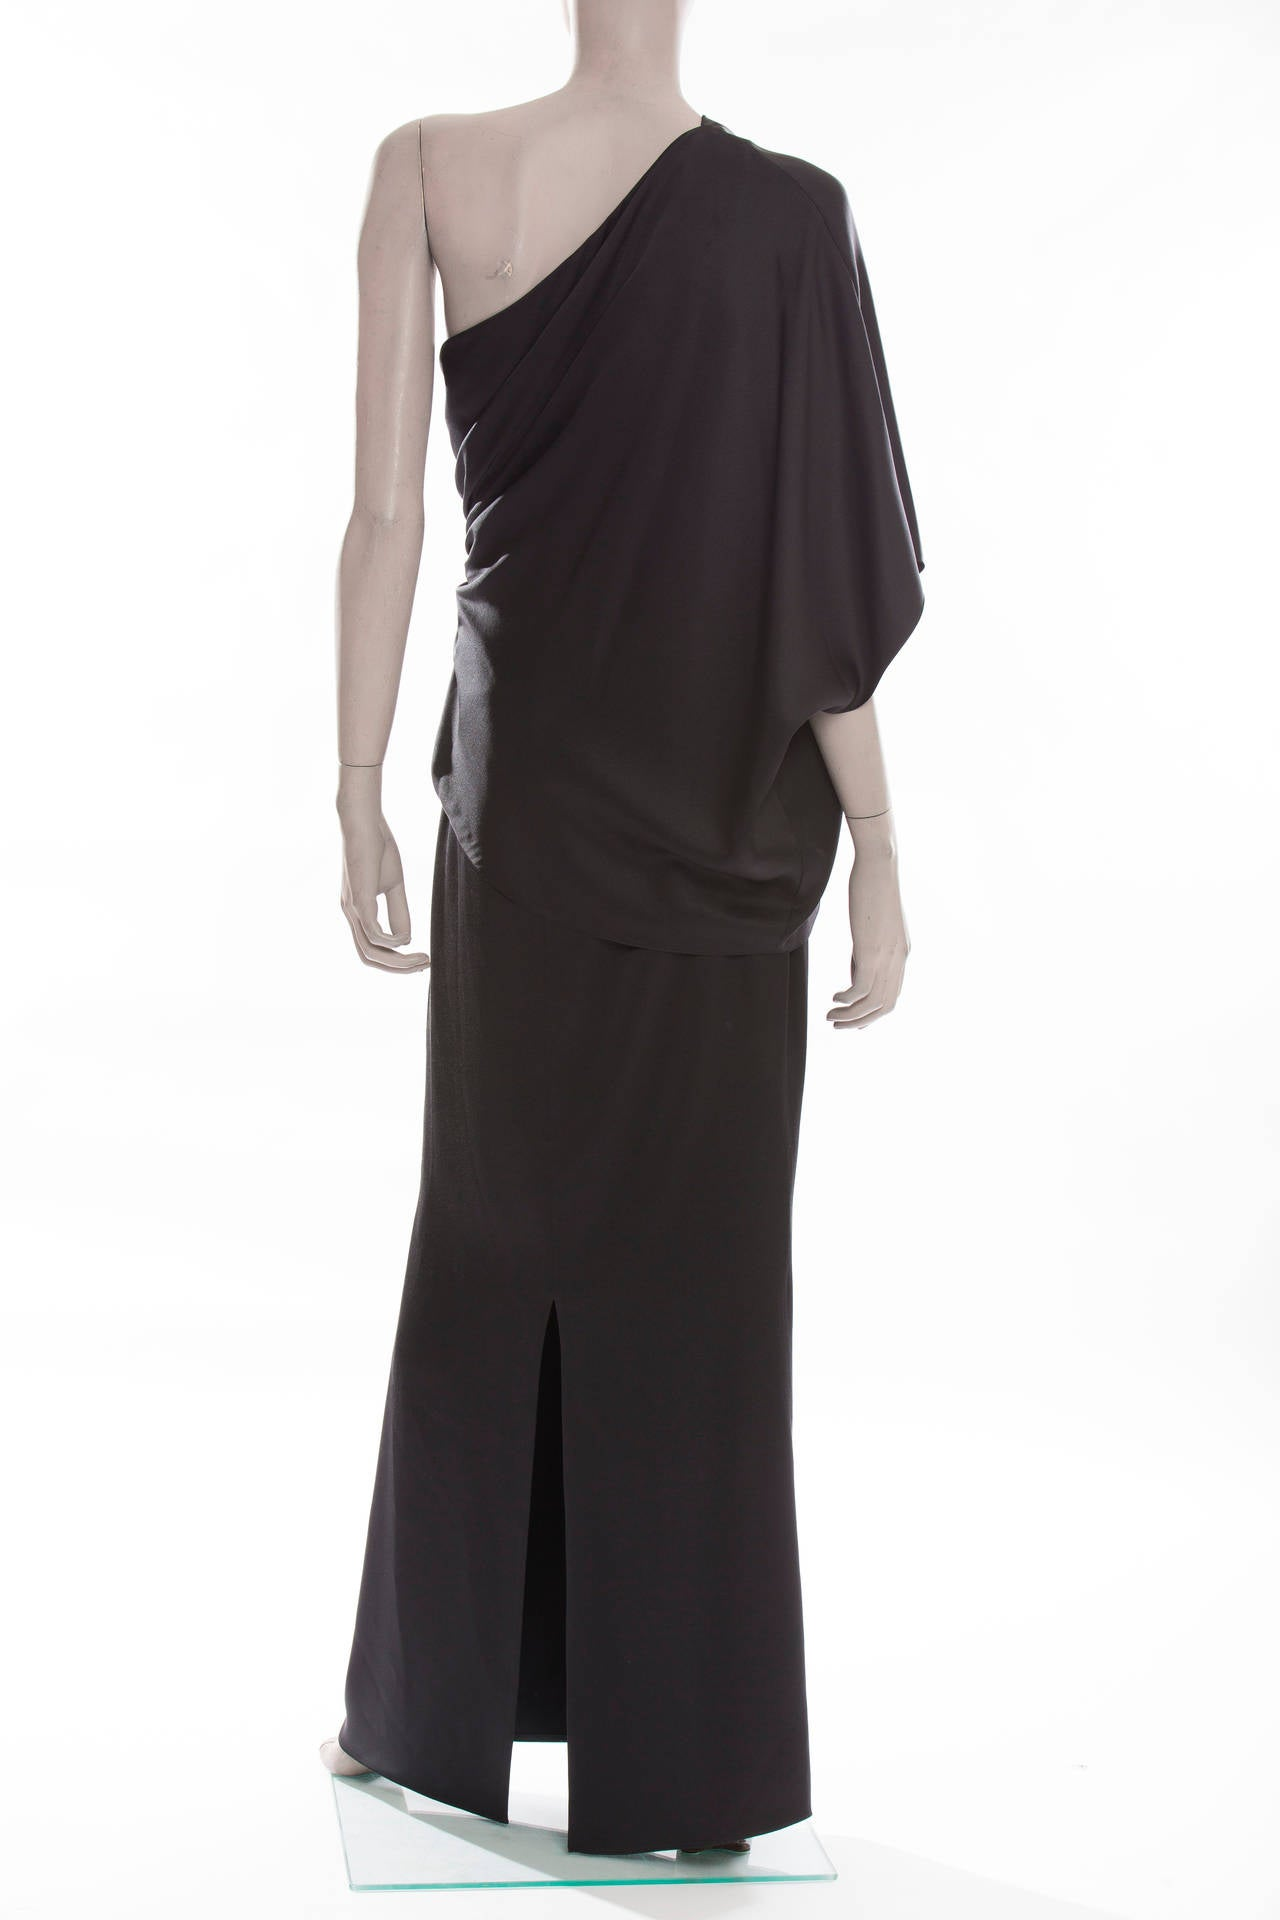 Chanel Black Silk One Shoulder Evening Dress, Cruise 2009  In Excellent Condition For Sale In Cincinnati, OH